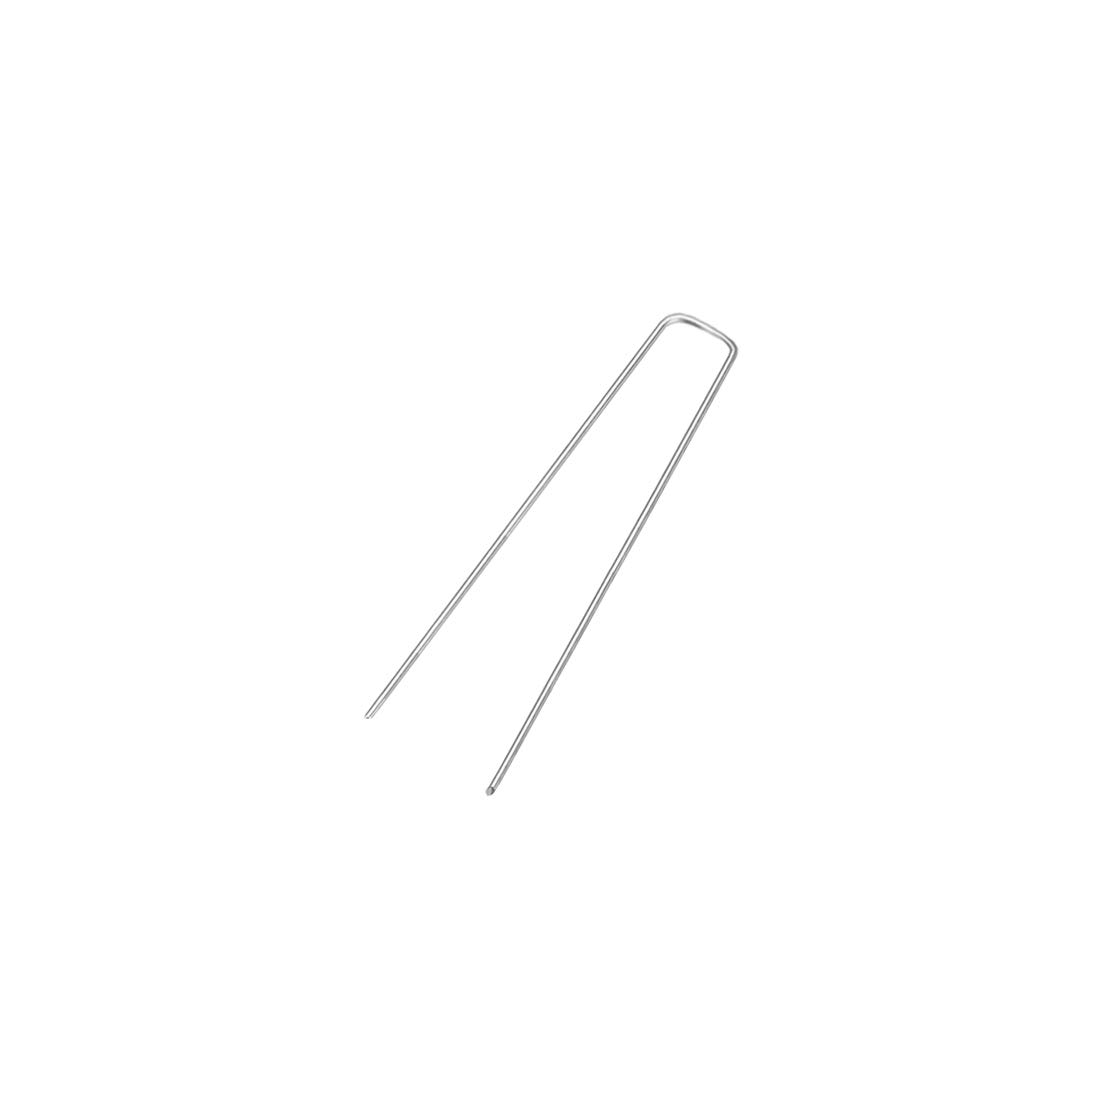 uxcell U-Shaped Garden Staples Stakes Pegs 150 x 25 x 3mm(LxWxD) 3mm Rod Dia Square 10pcs